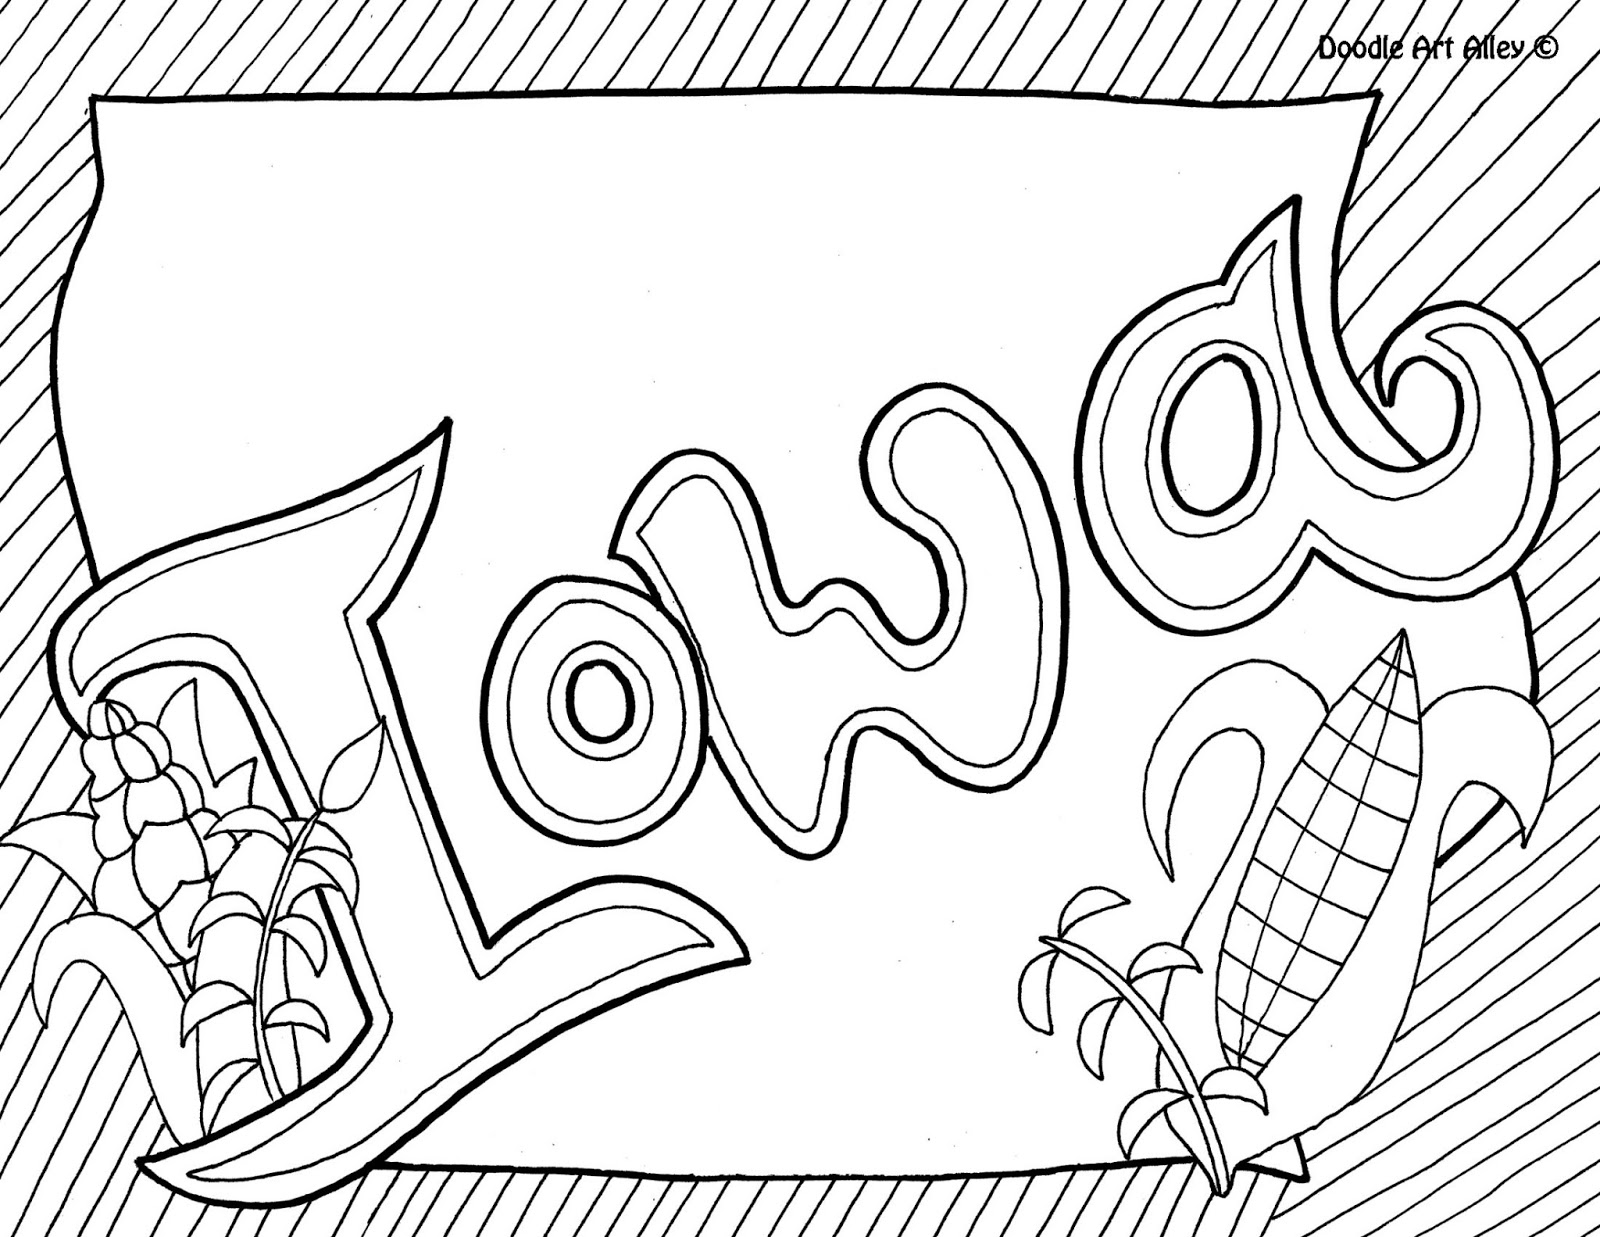 Teacher's Life Made Easy!!!: Free Awesome Coloring Pages